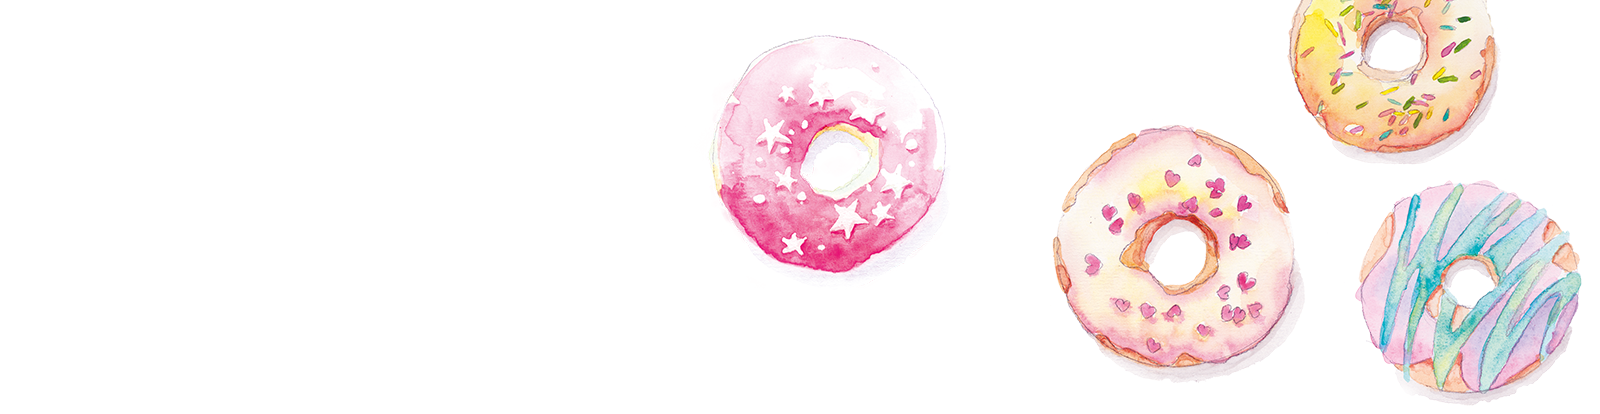 banners_donuts